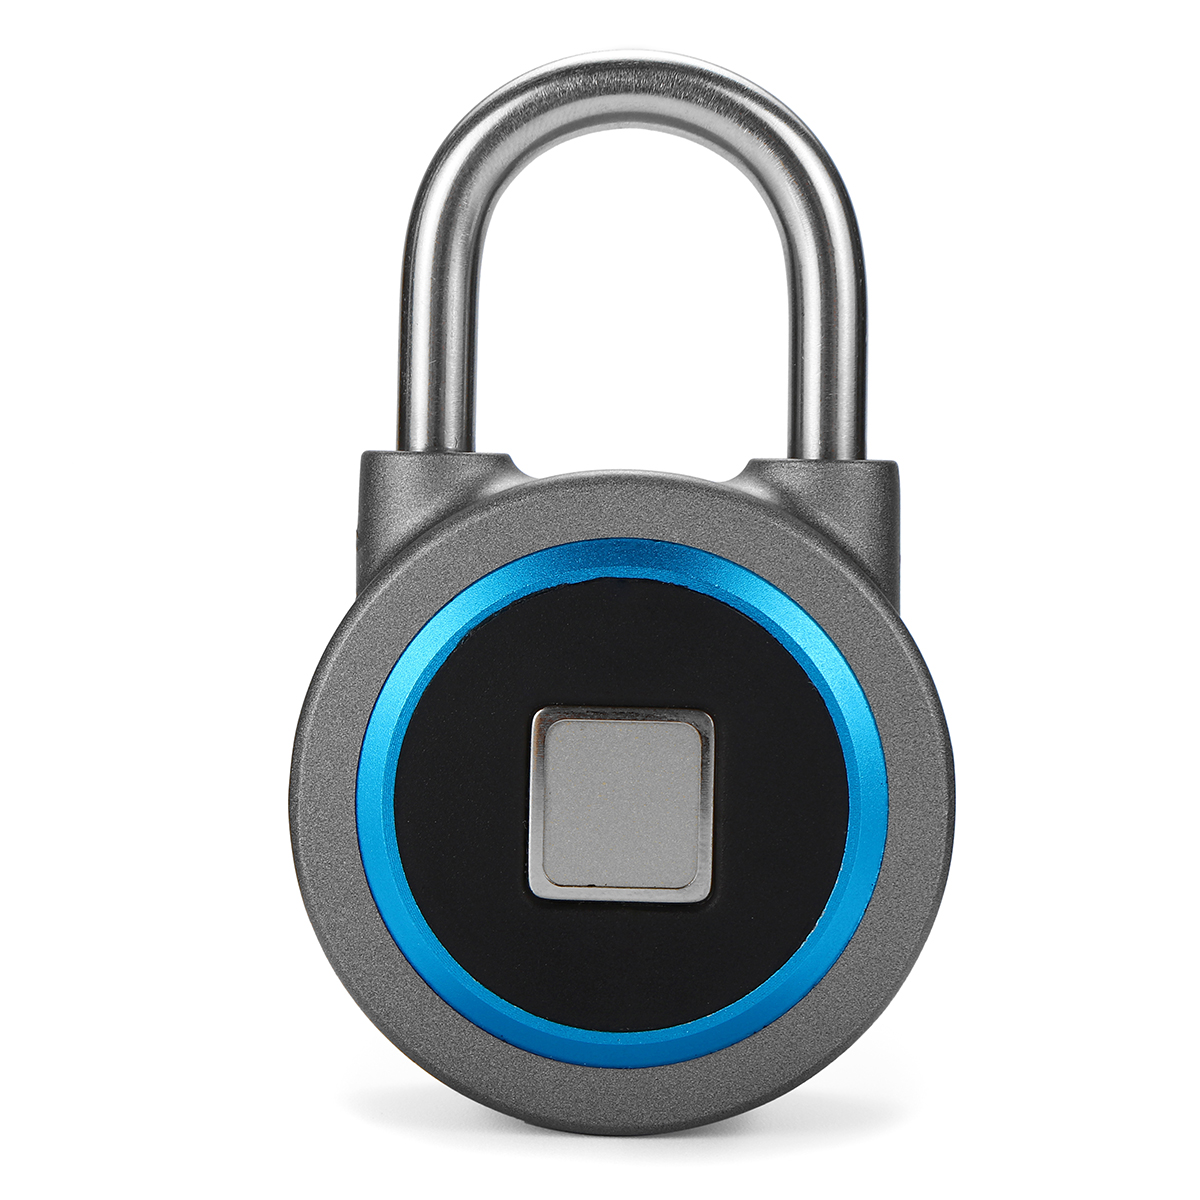 Fingerprint Recognition Bluetooth Keyless Lock – Waterproof 4